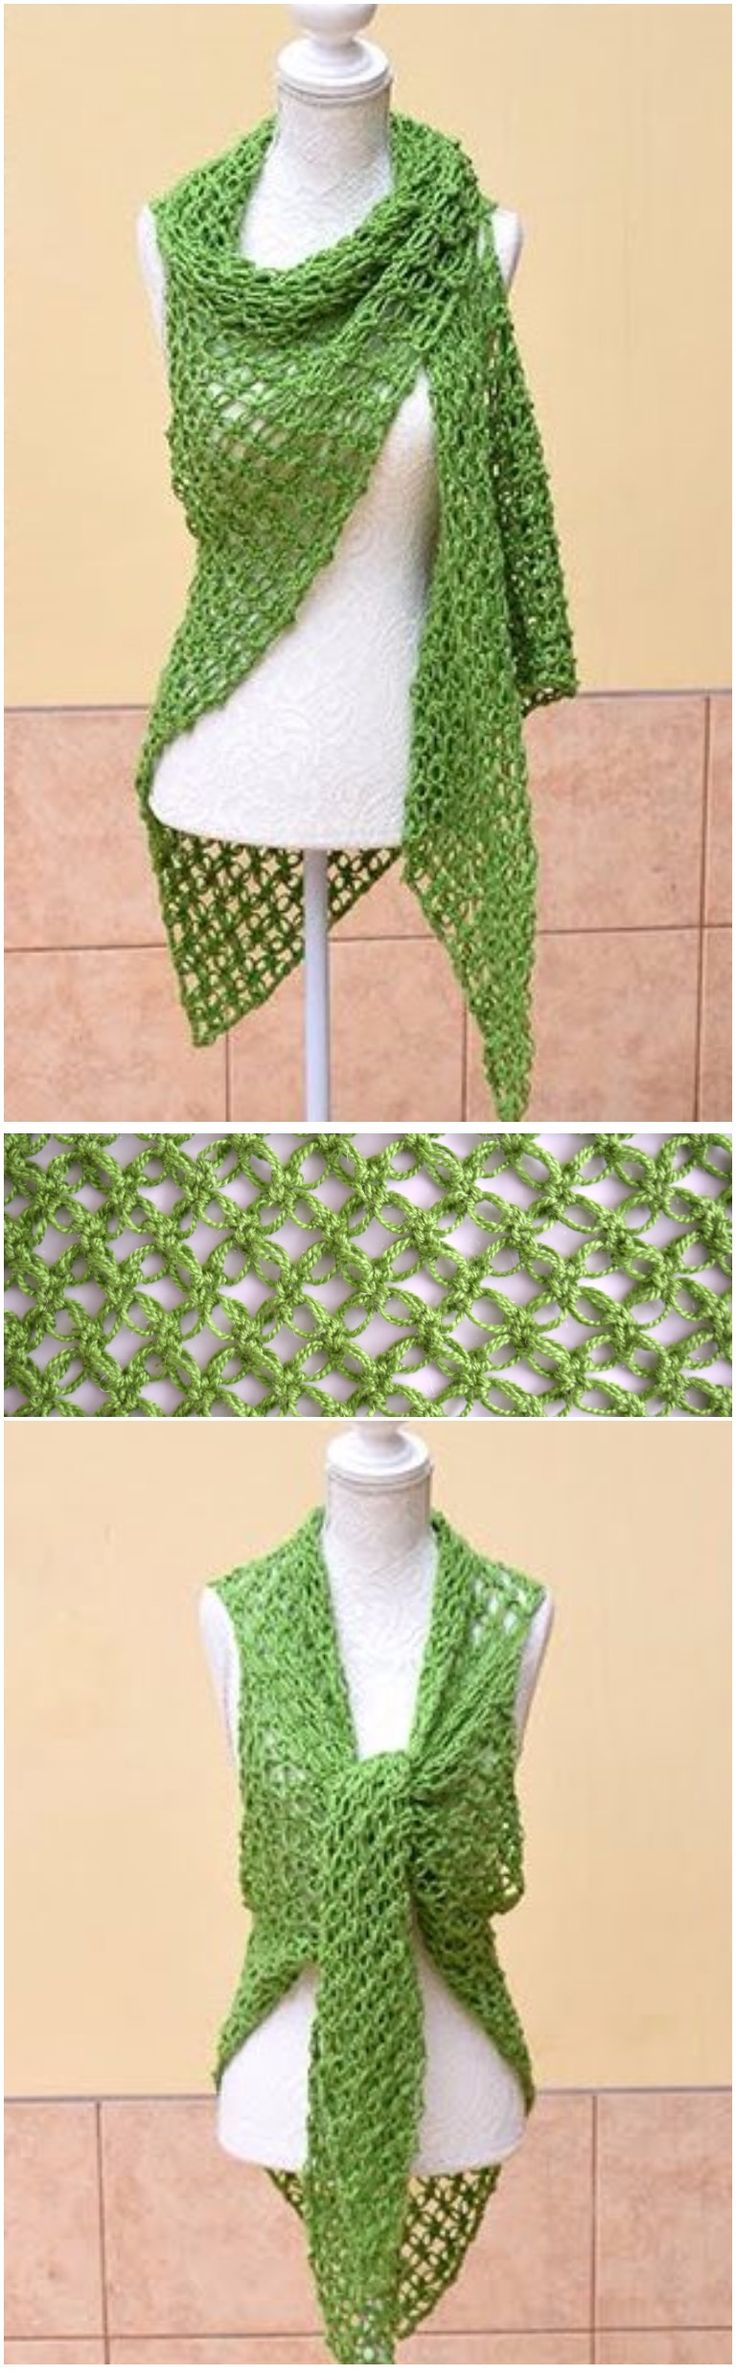 Learn To Crochet Shawl In Solomon's knot Stitch